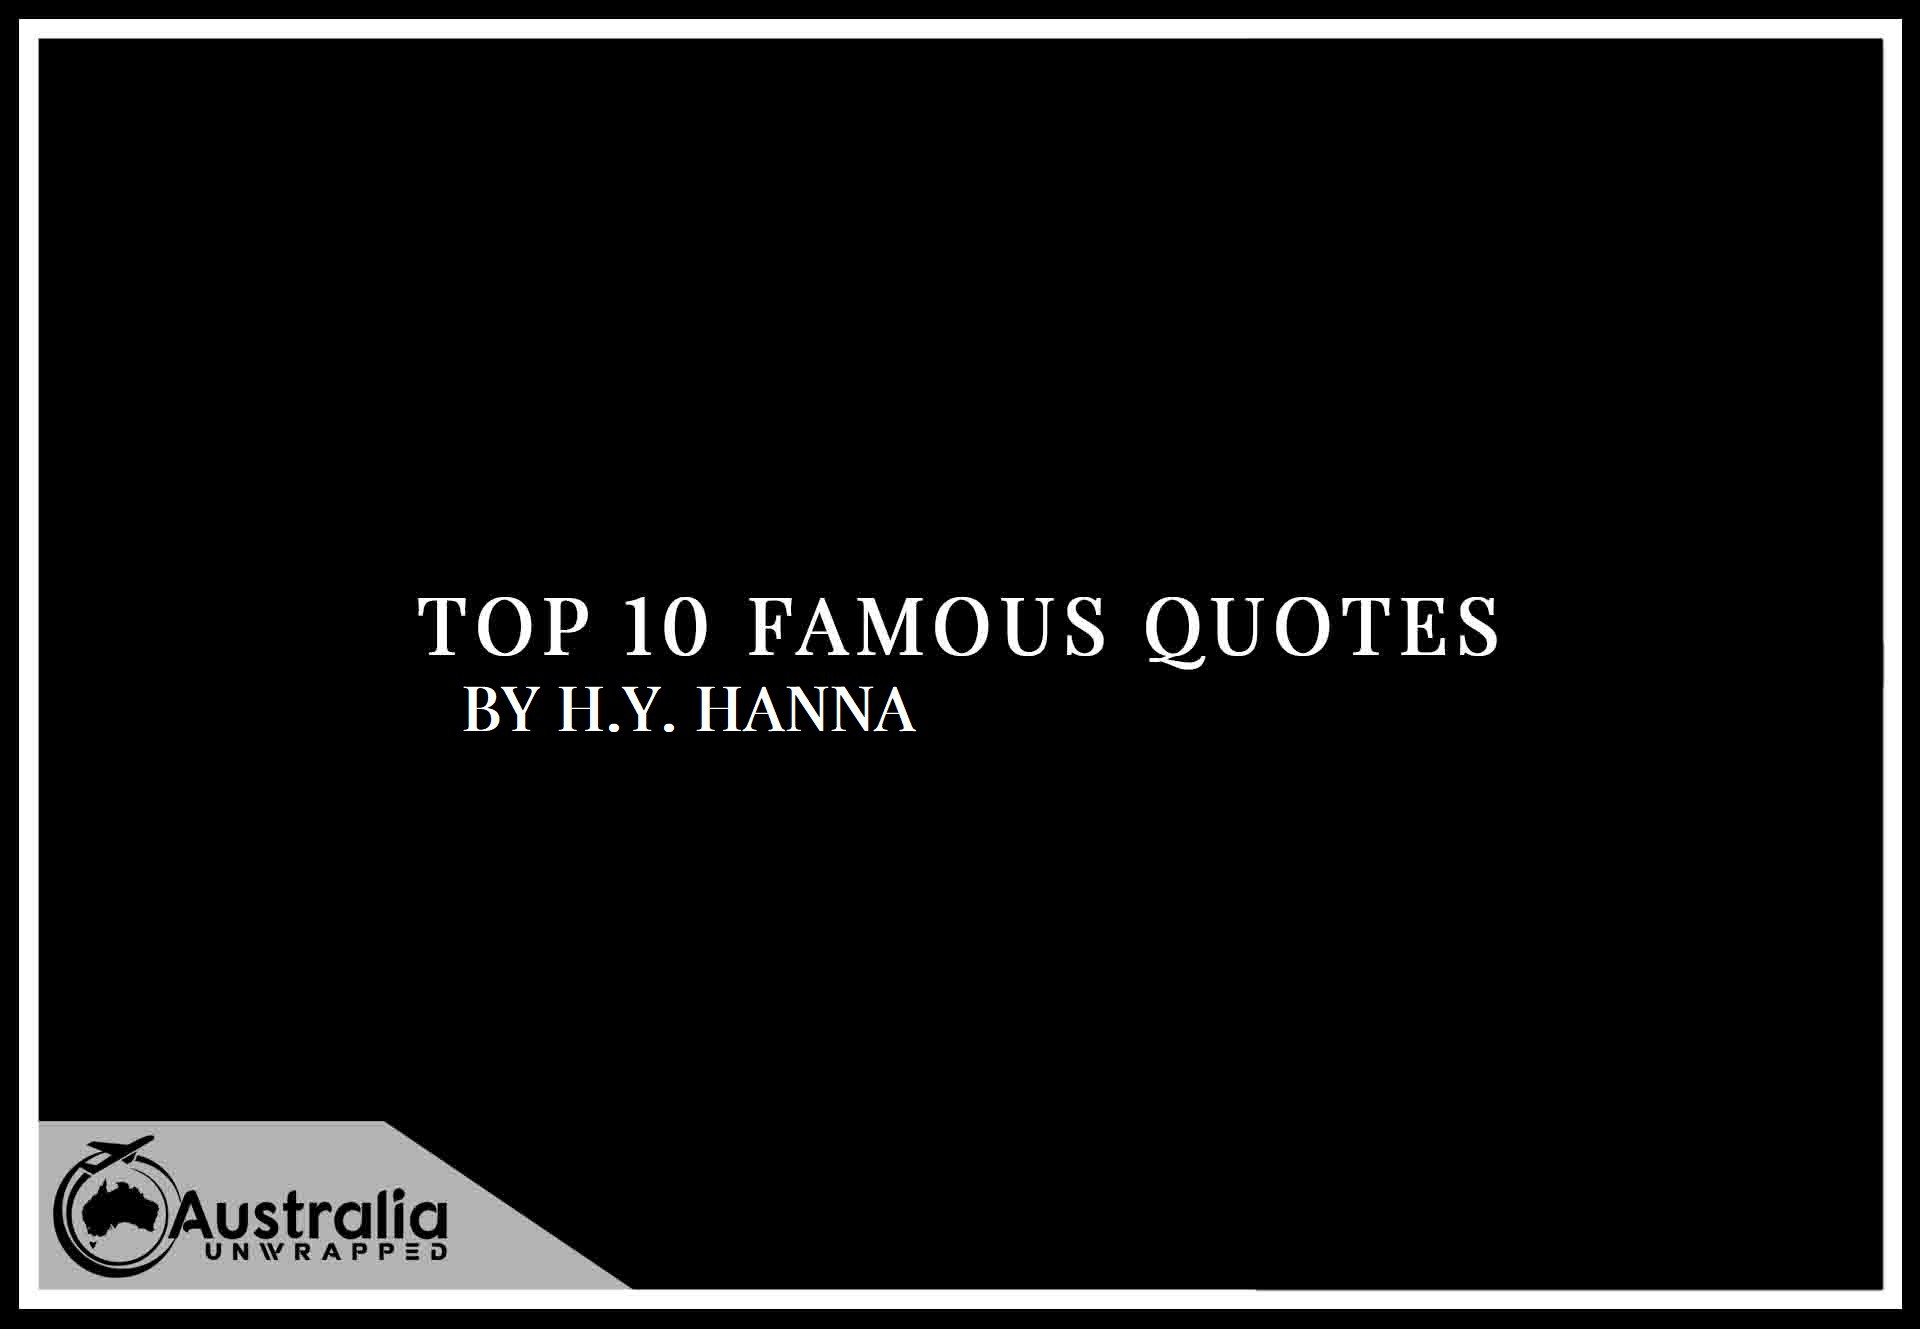 Top 10 Famous Quotes by Author H.Y. Hanna